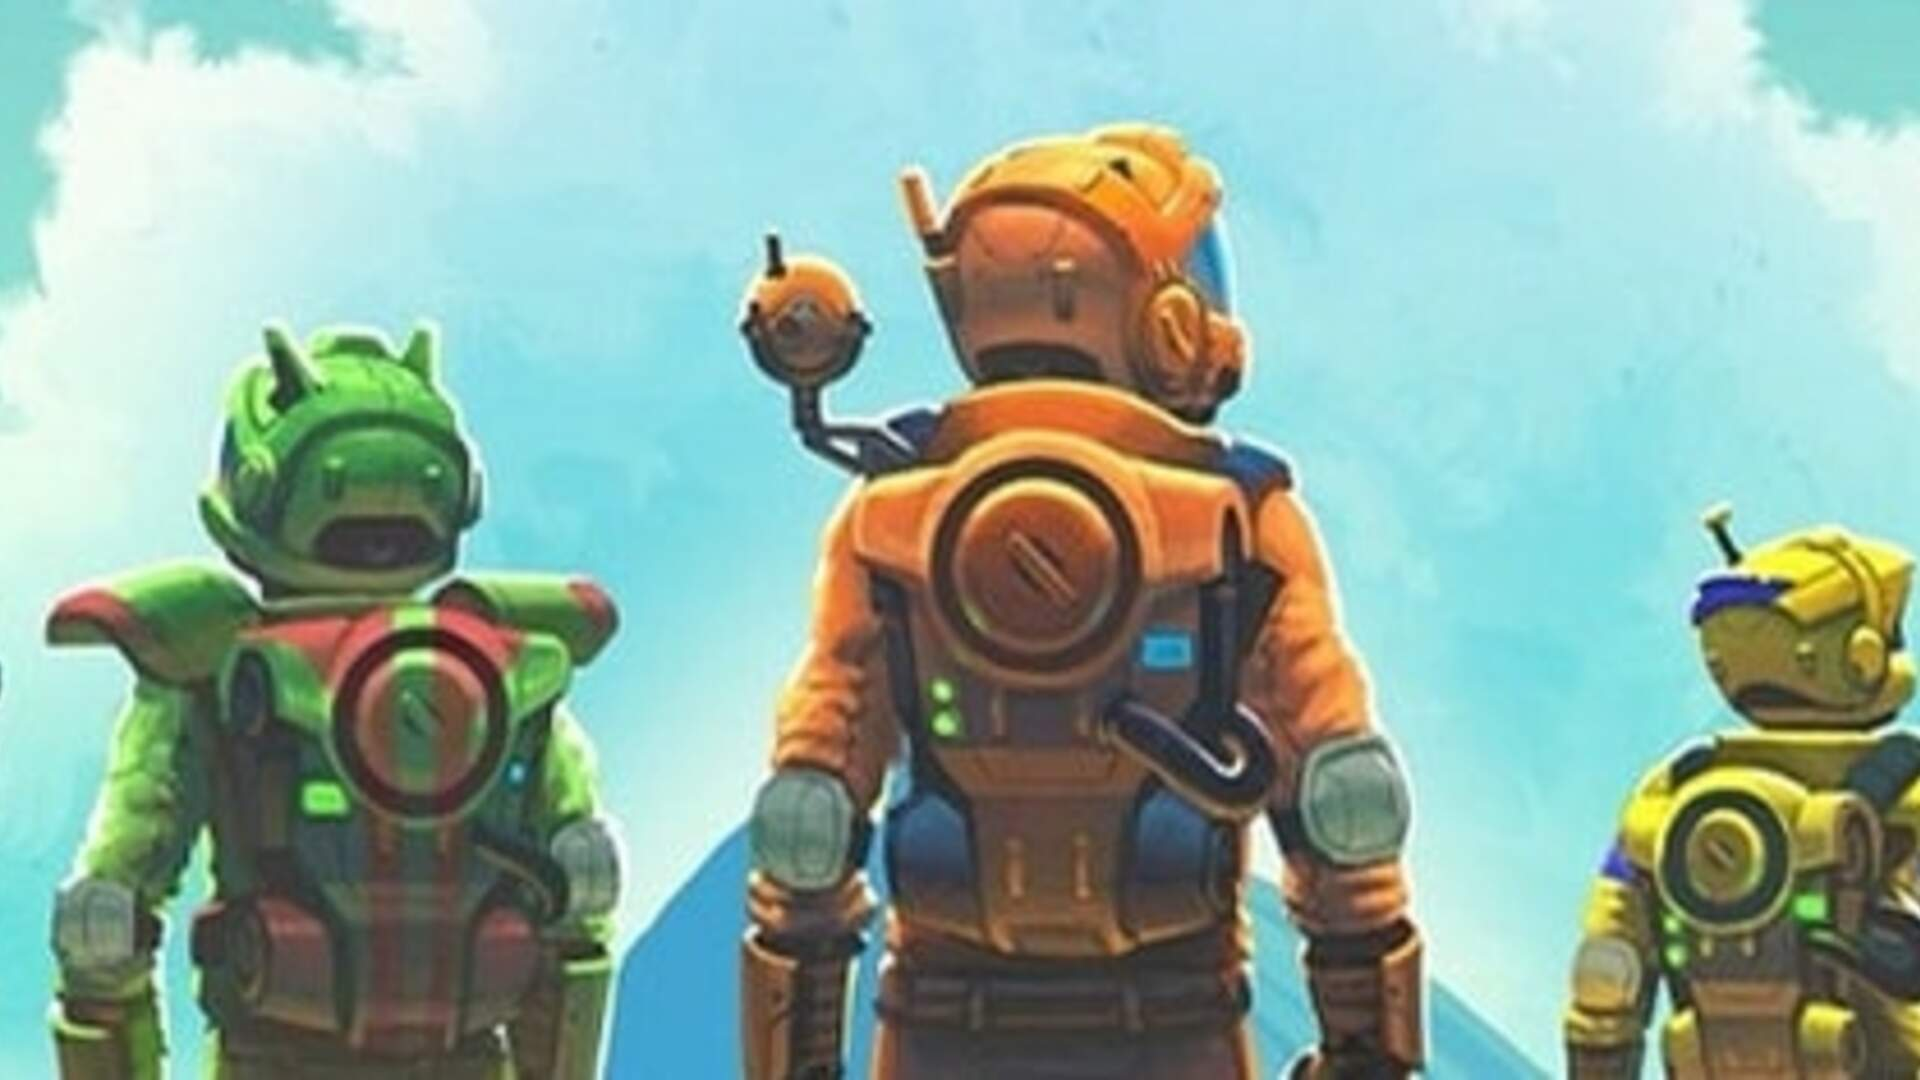 No Man's Sky Multiplayer Guide - Multiplayer Missions, Join a Game, Play With Friends, Can You Meet Other Players in No Man's Sky NEXT